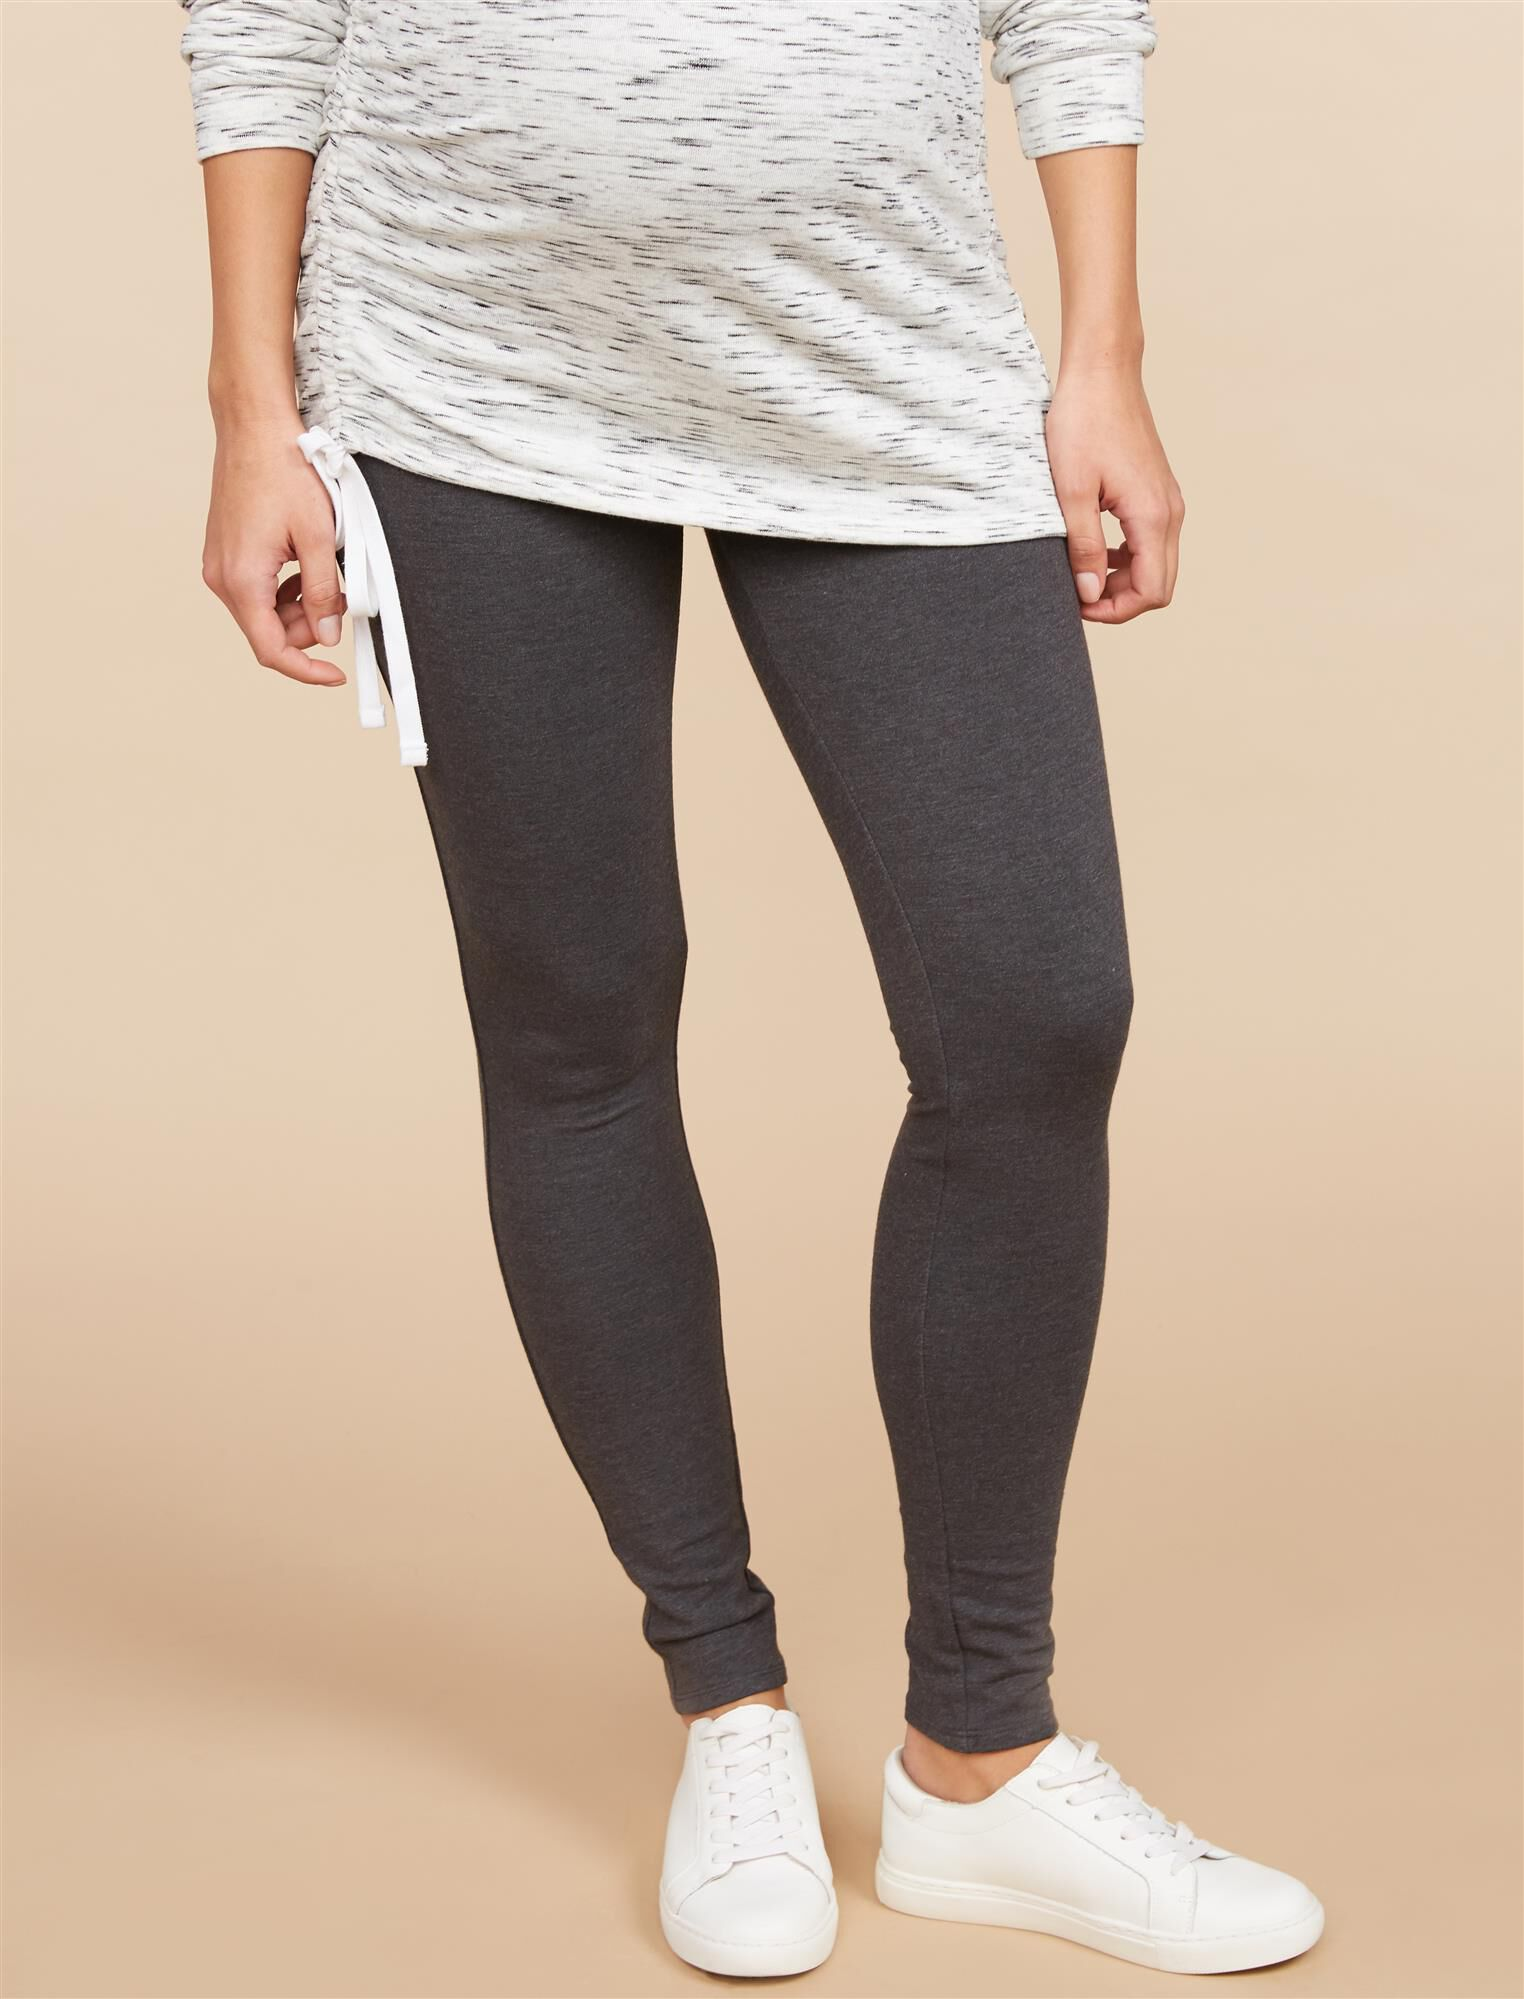 Secret Fit Belly French Terry Maternity Leggings